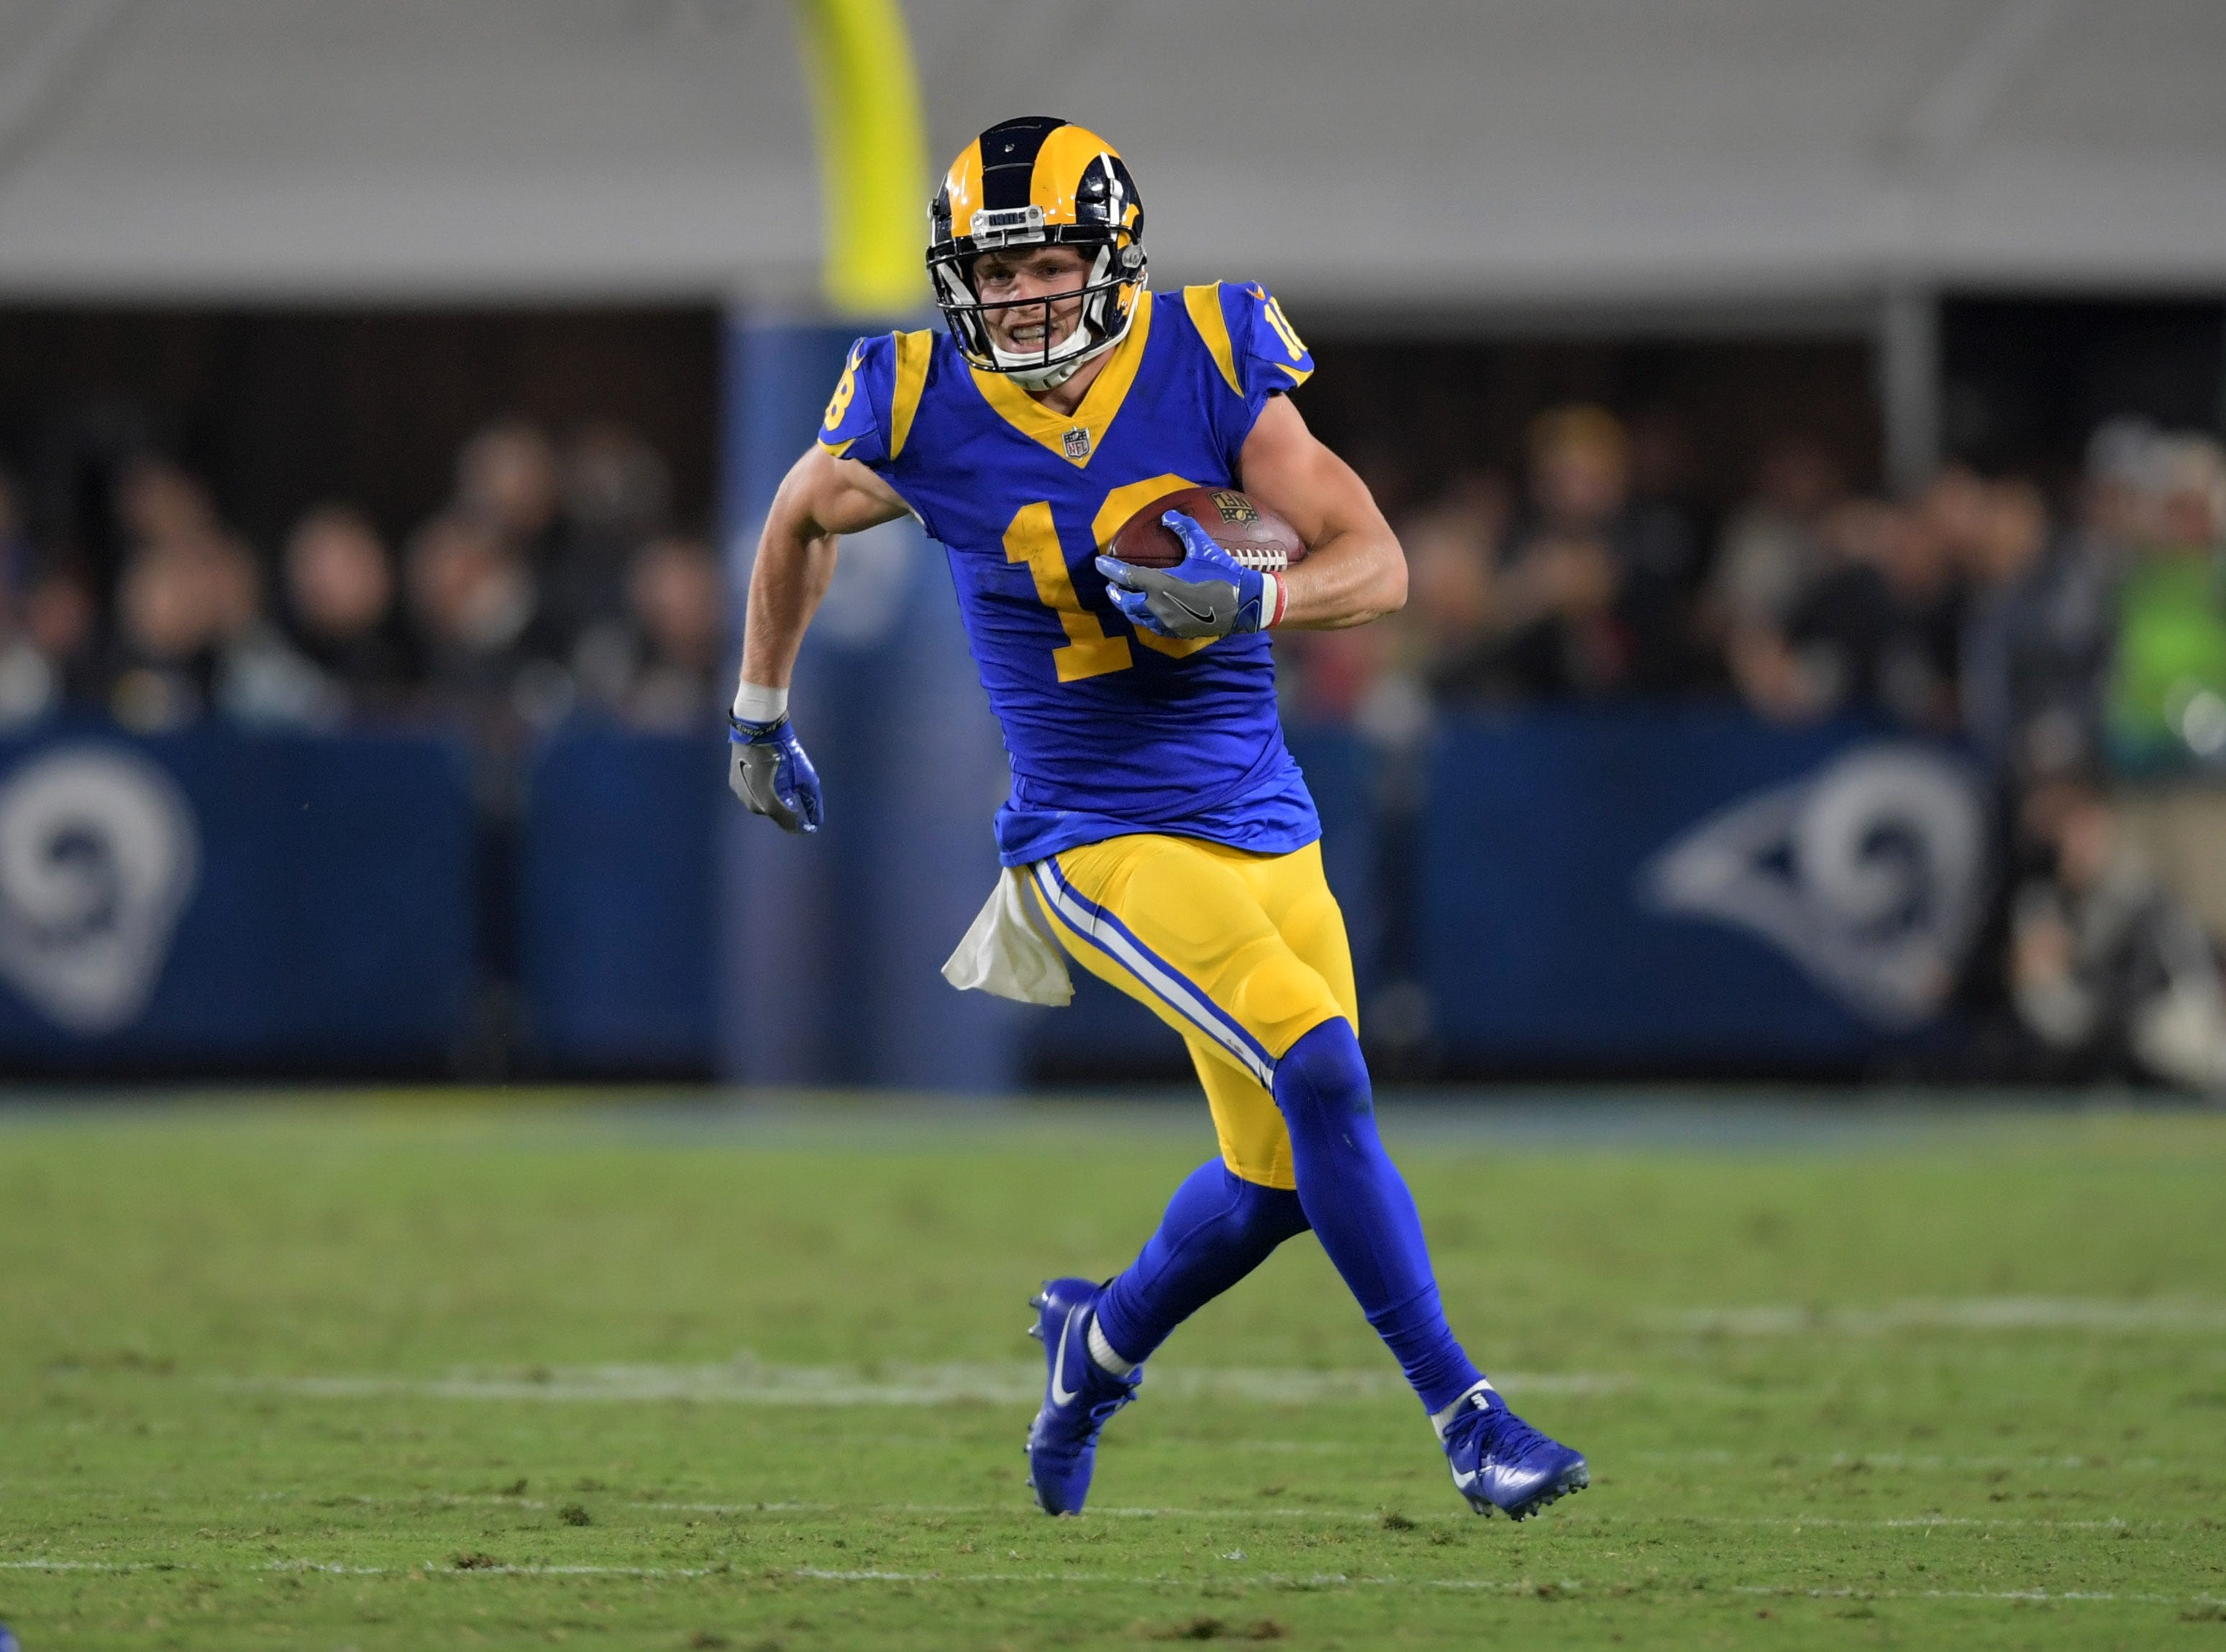 Cooper Kupp, WR, Los Angeles Rams (torn ACL, out for season)